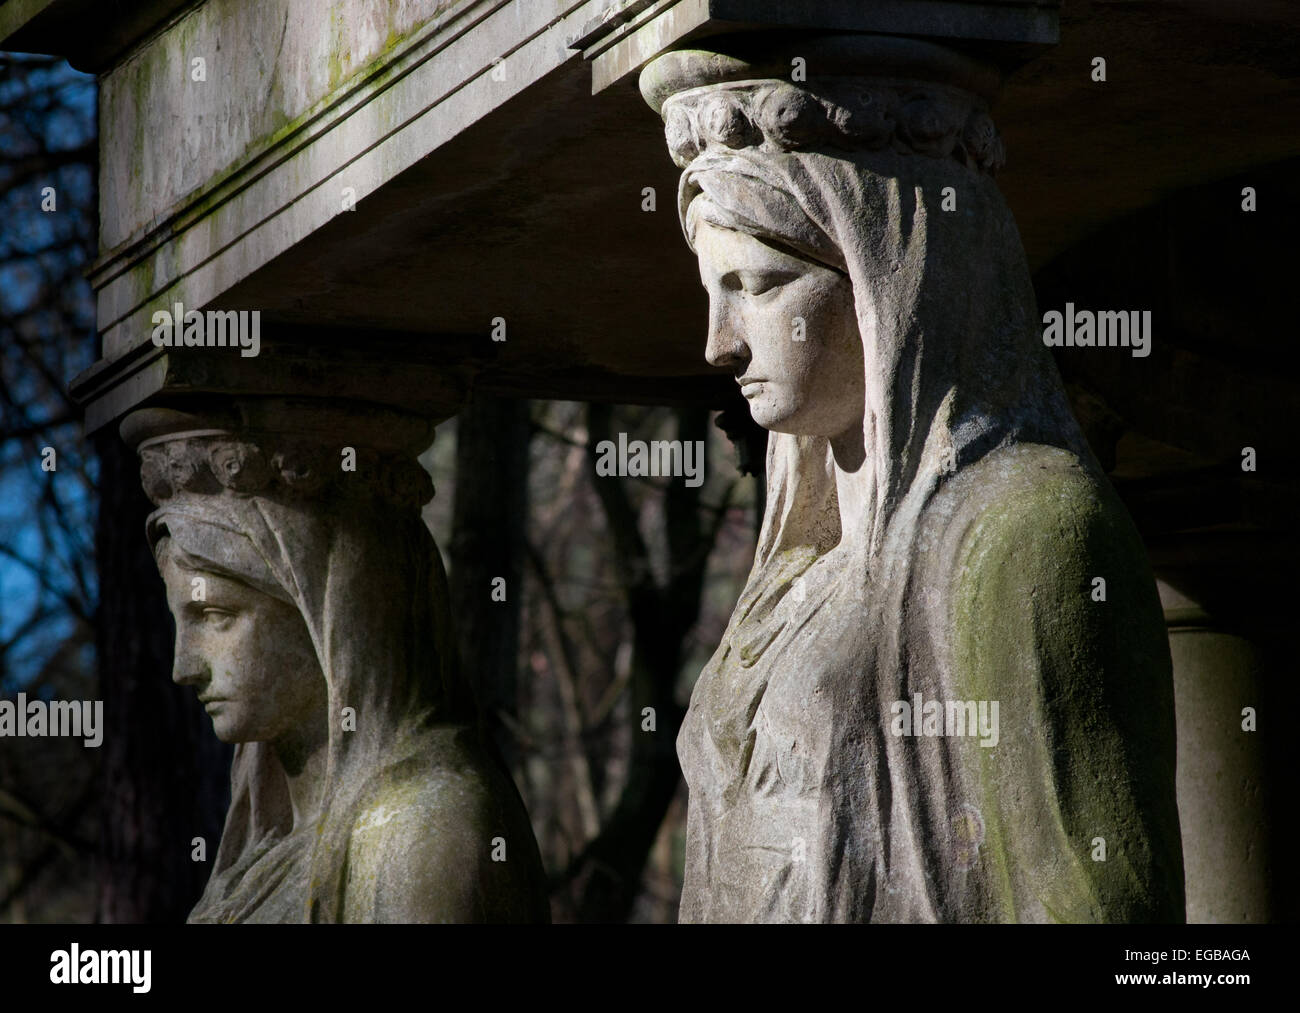 Grieving stone angel sculptures on grand tomb, Stahnsdorf Cemetery near Berlin - Stock Image